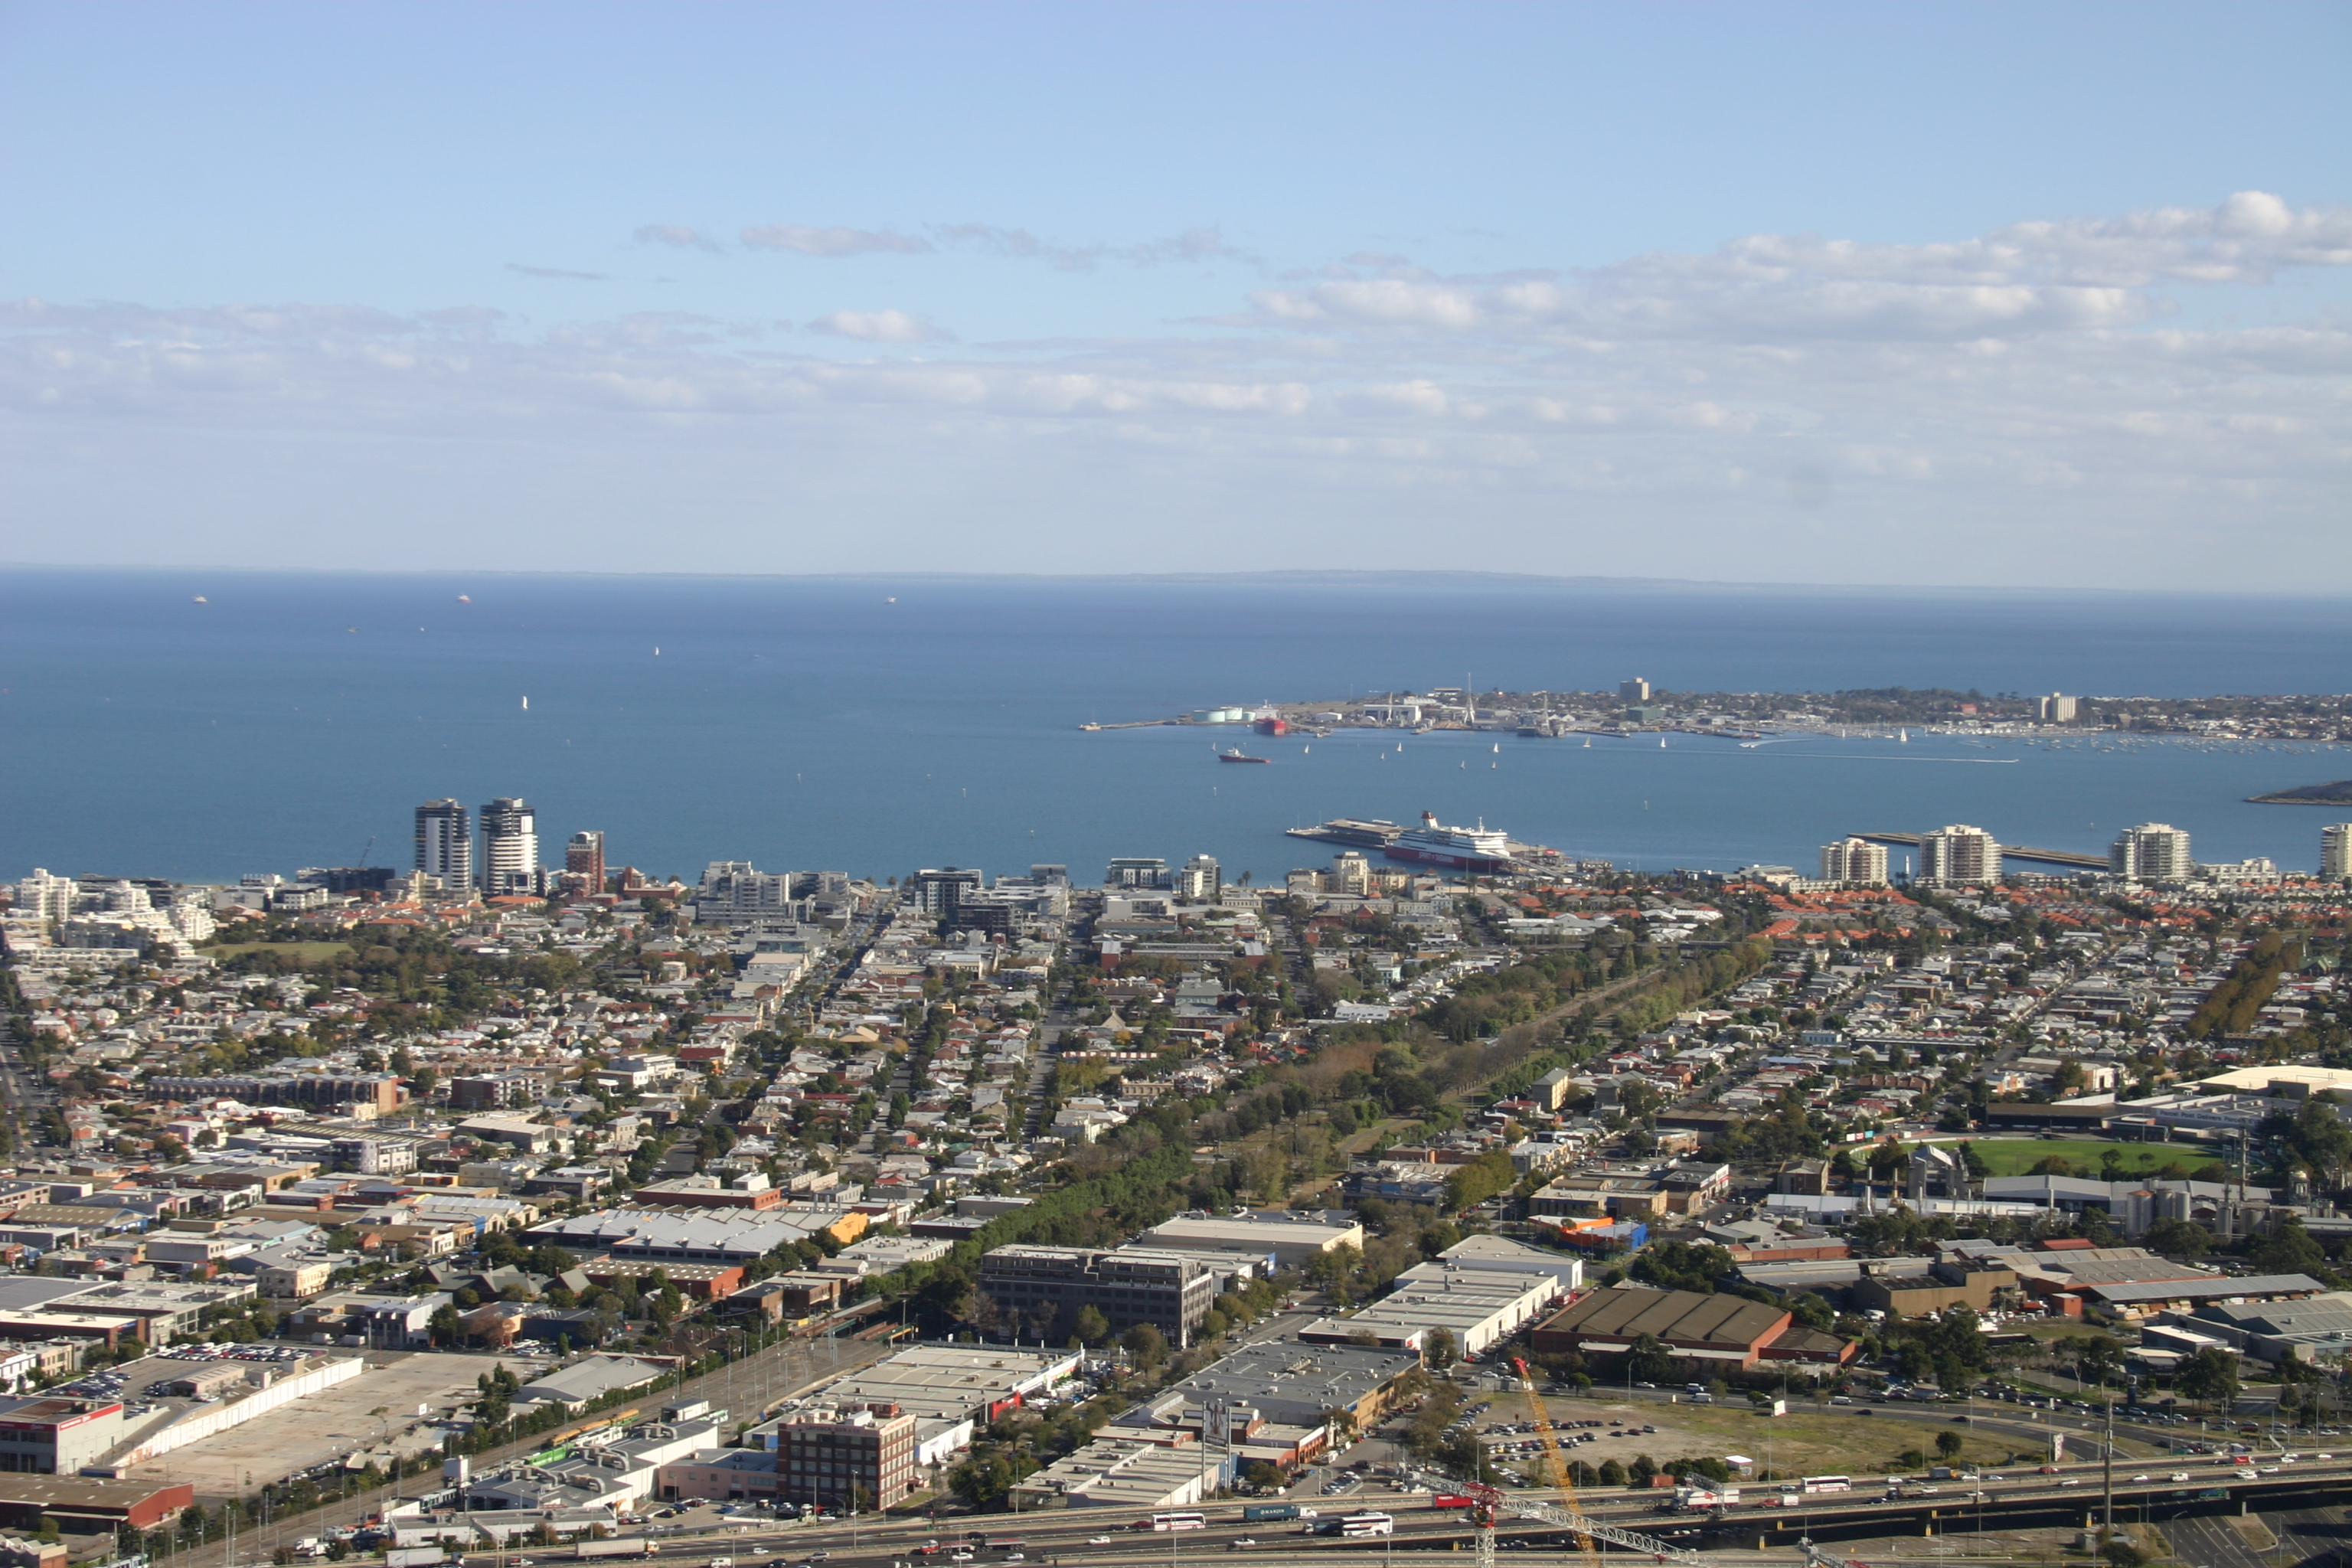 Kluft-photo-Melbourne and Port Phillip Bay-Img 8386.jpg